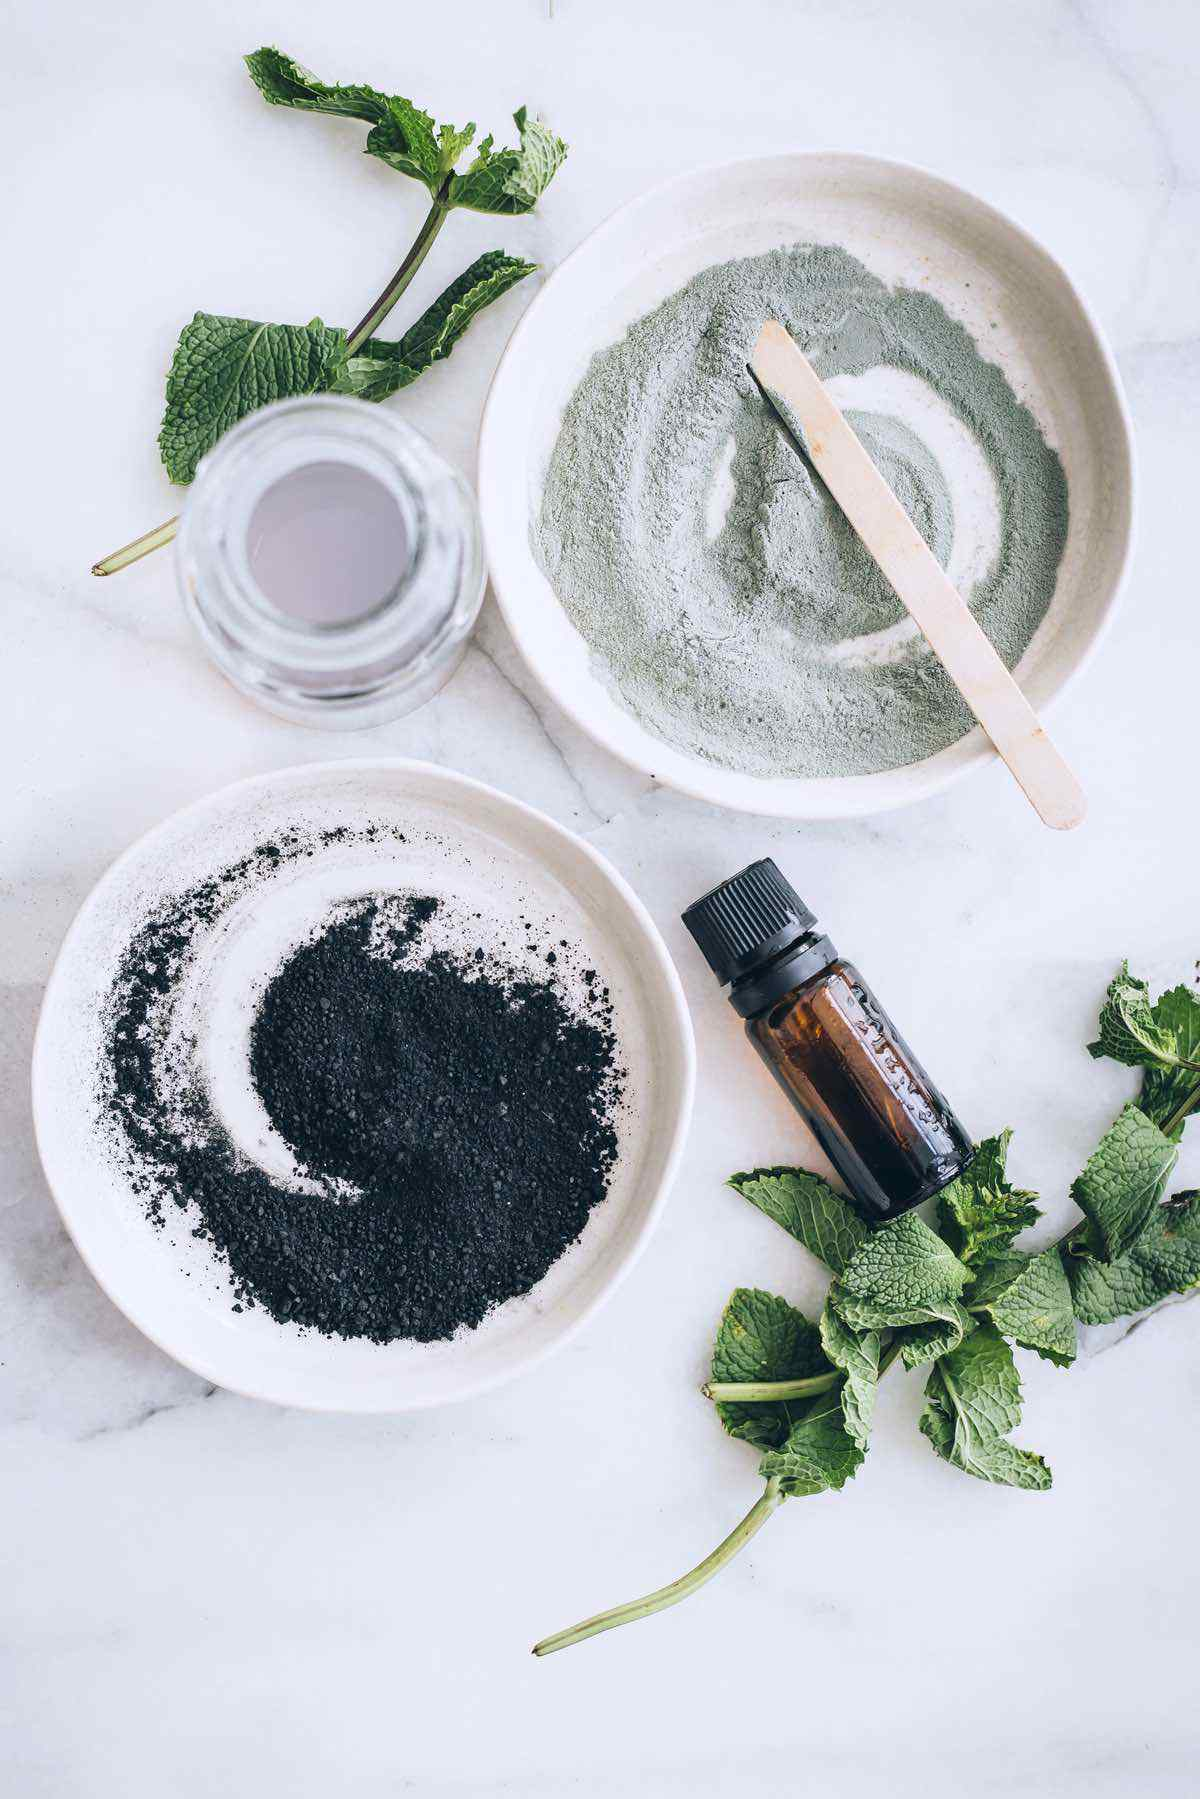 4-Ingredient DIY Charcoal Face Mask for Blackheads